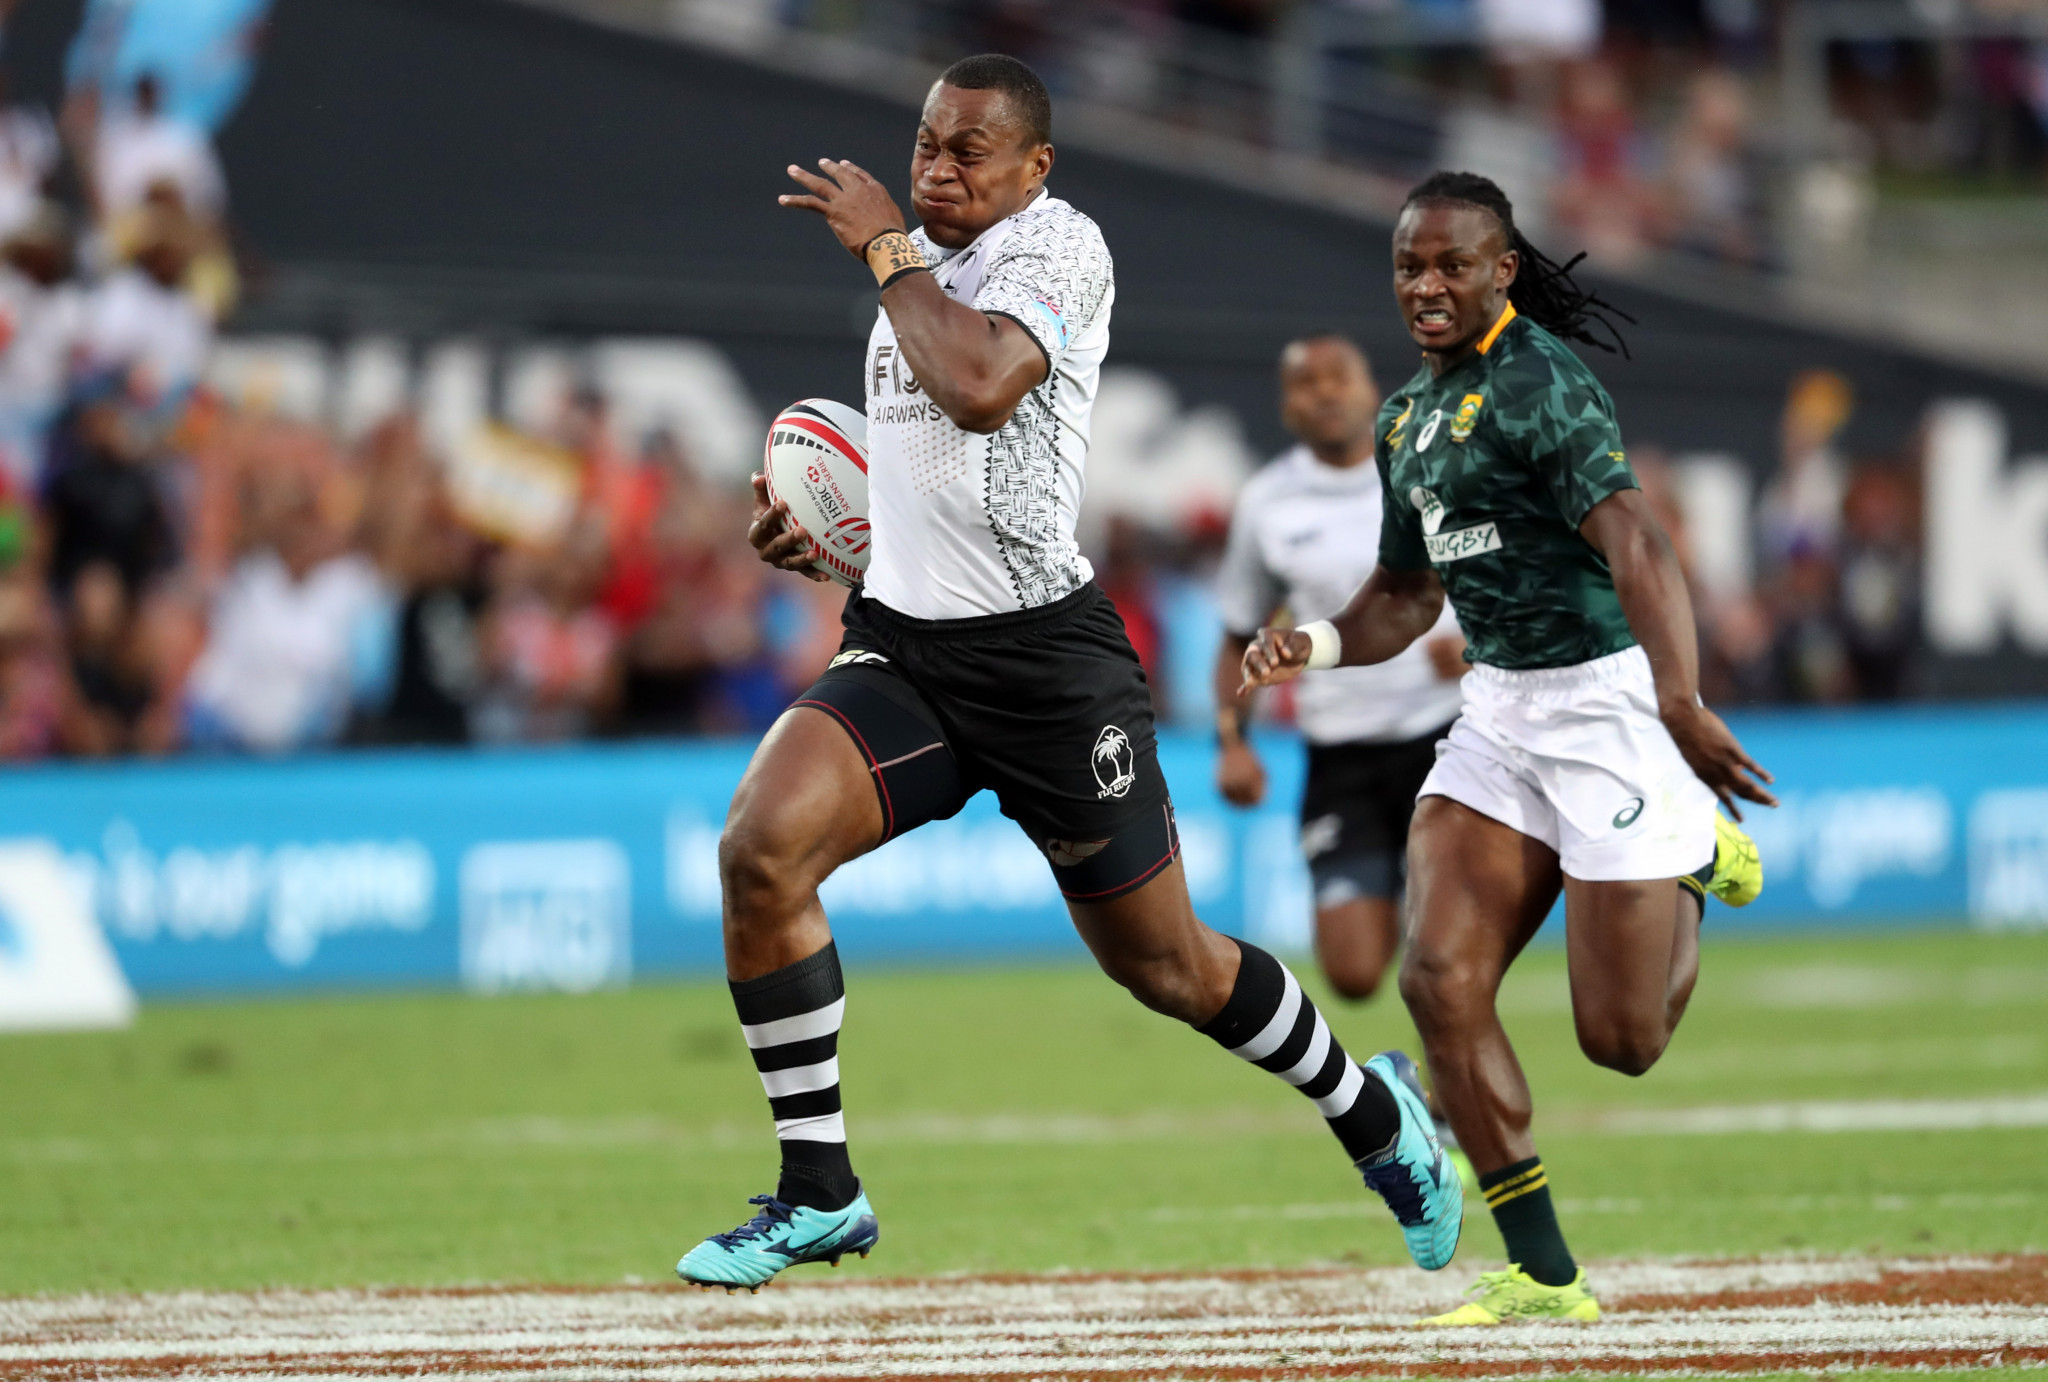 Fiji fightback to stun South Africa in final of World Rugby Sevens Series event in Hamilton